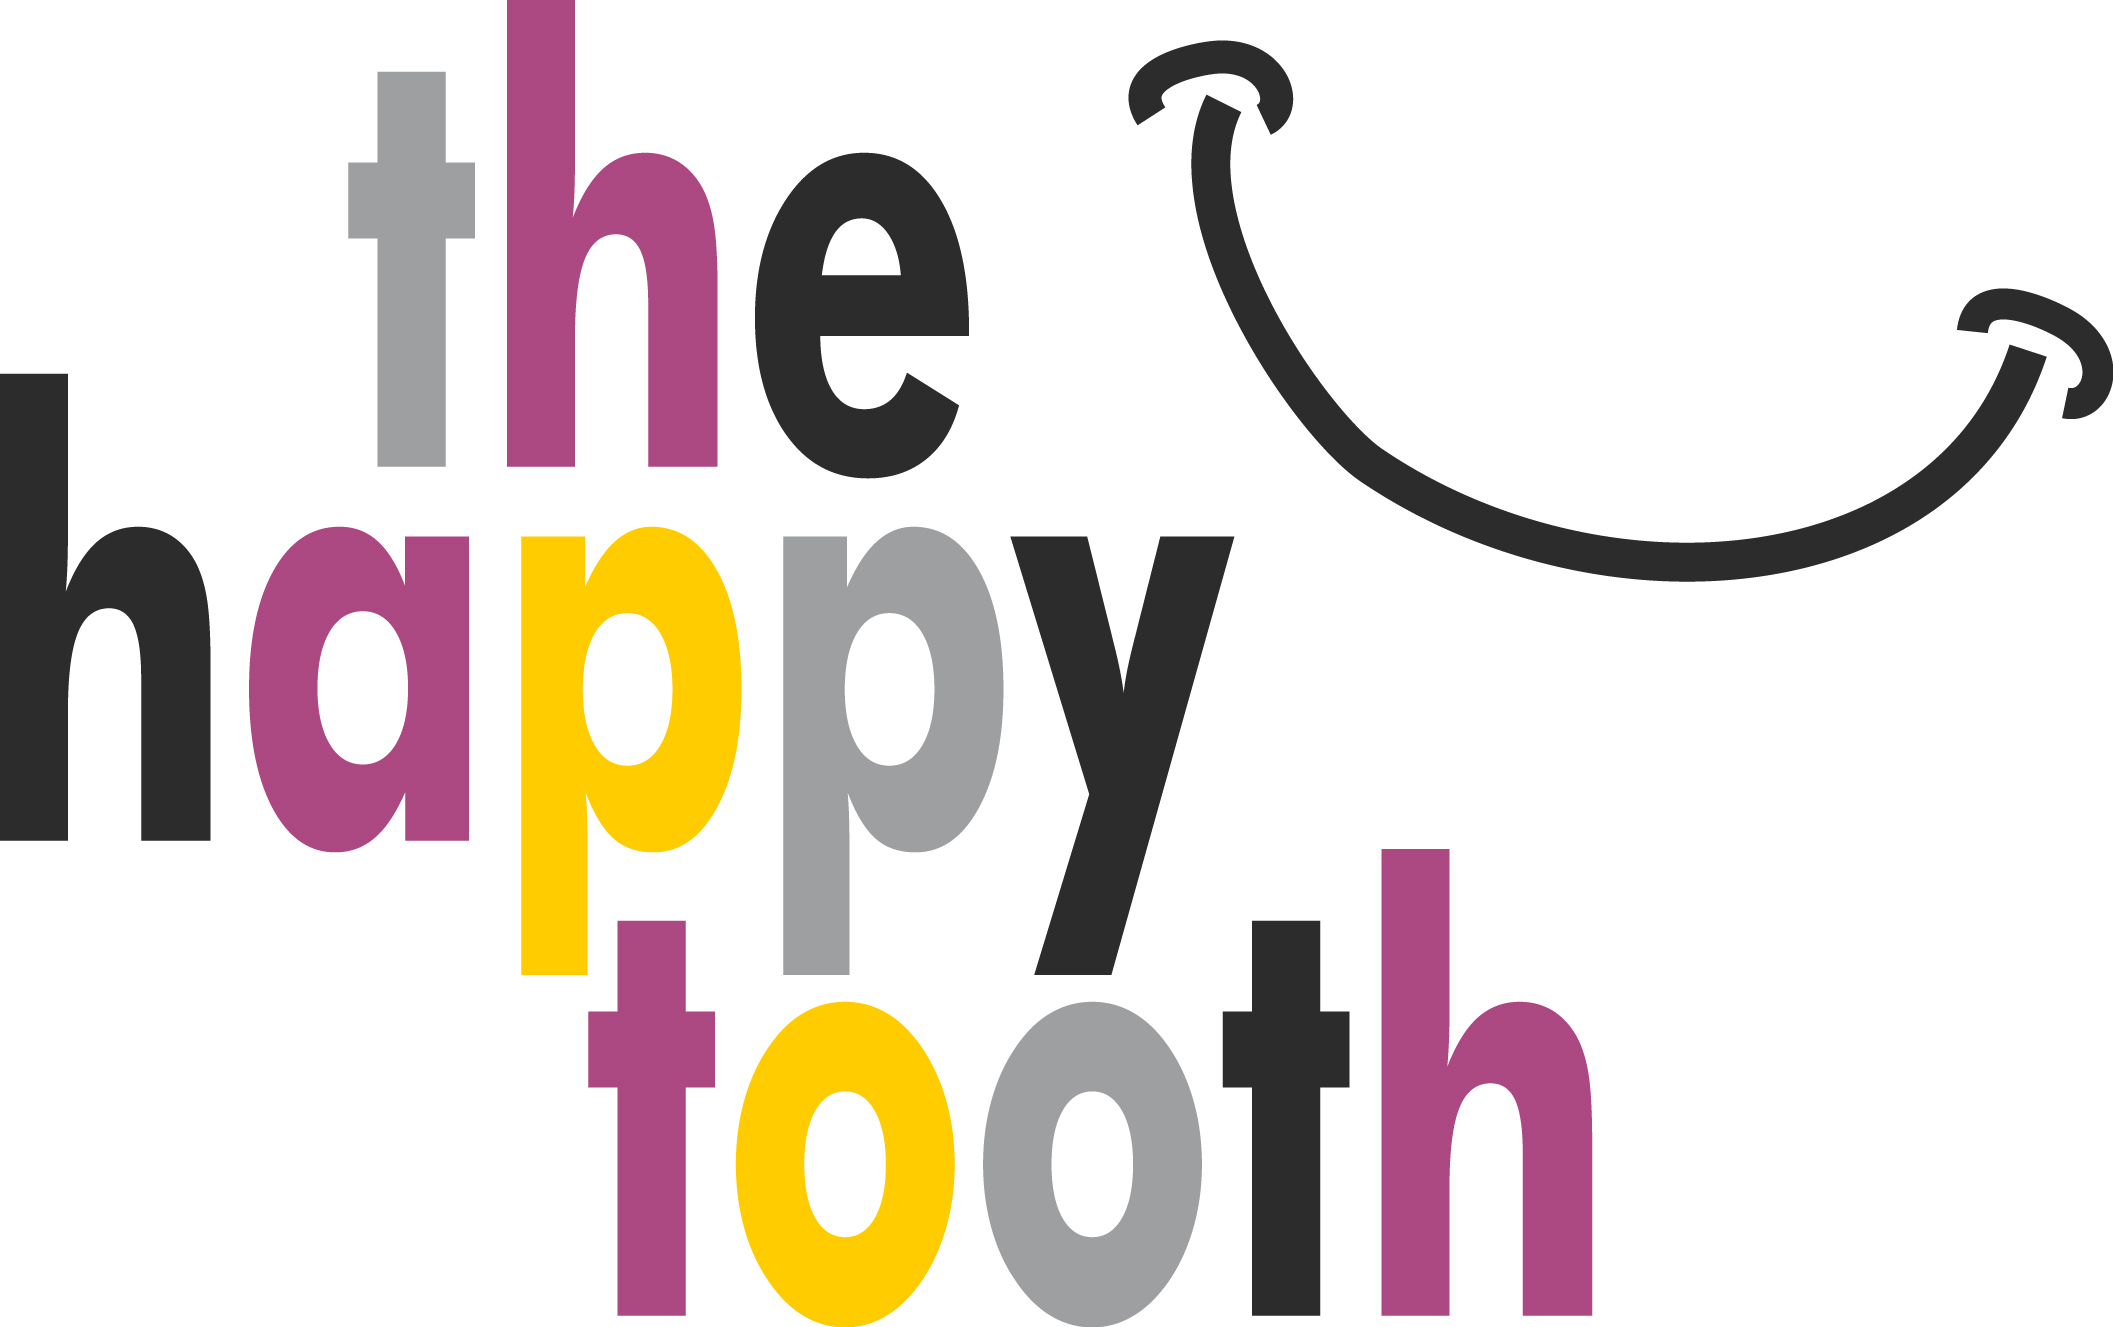 The Happy Tooth